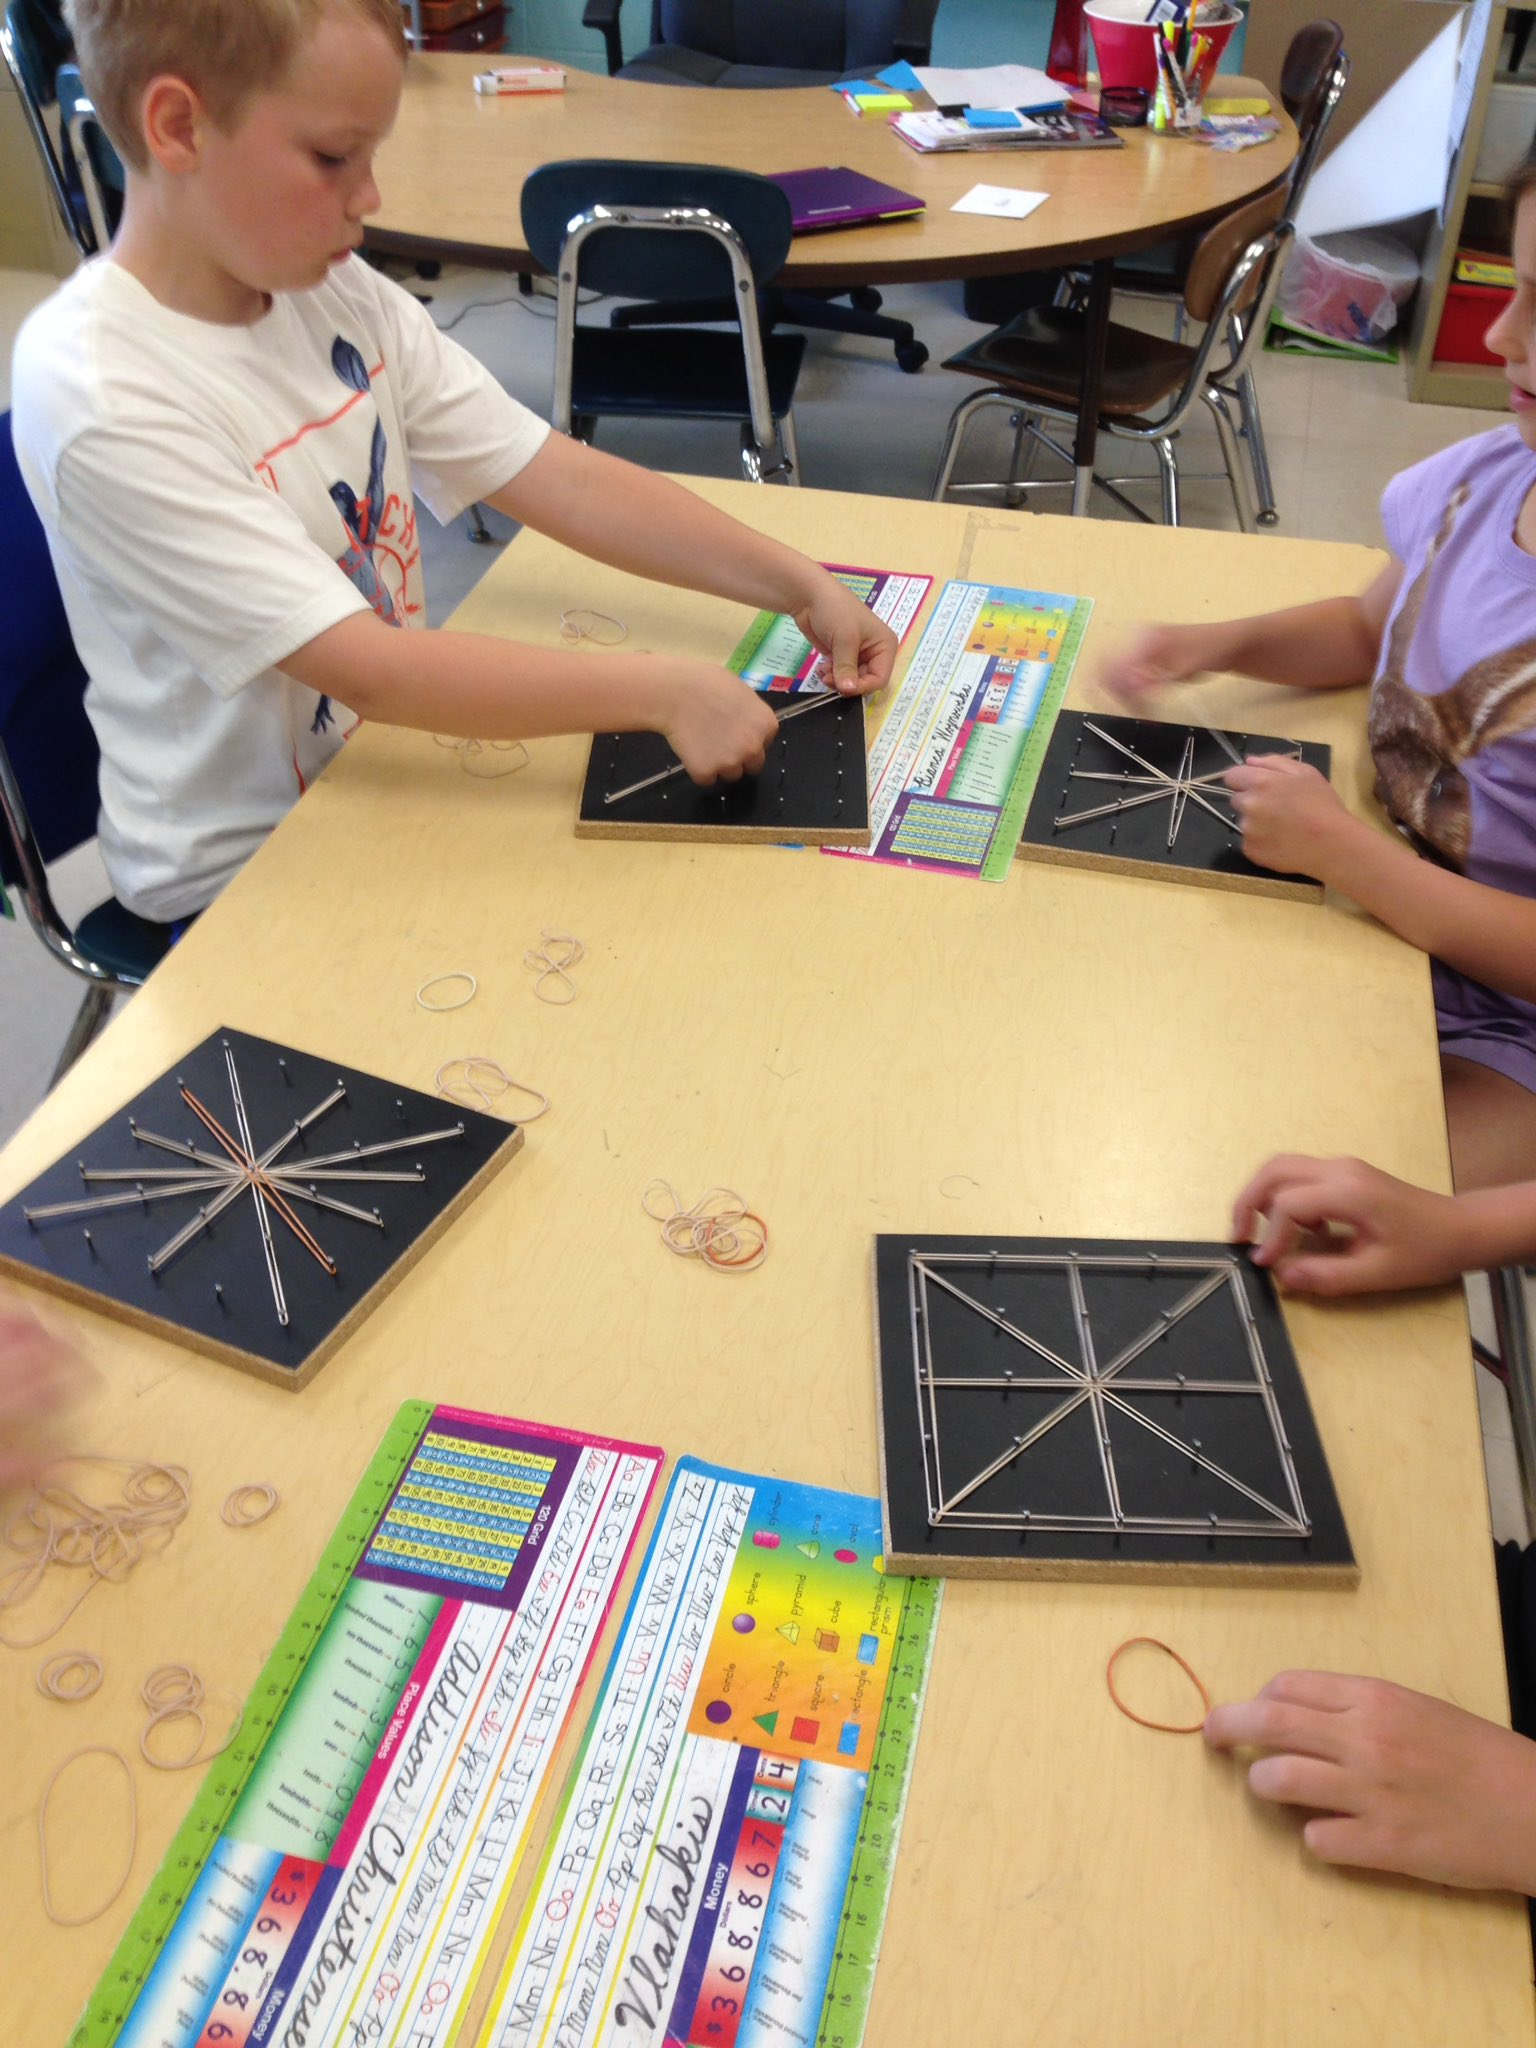 Geoboards help us study geometric shapes! #iginspires #rtsd26learns https://t.co/RPI4W10G4L